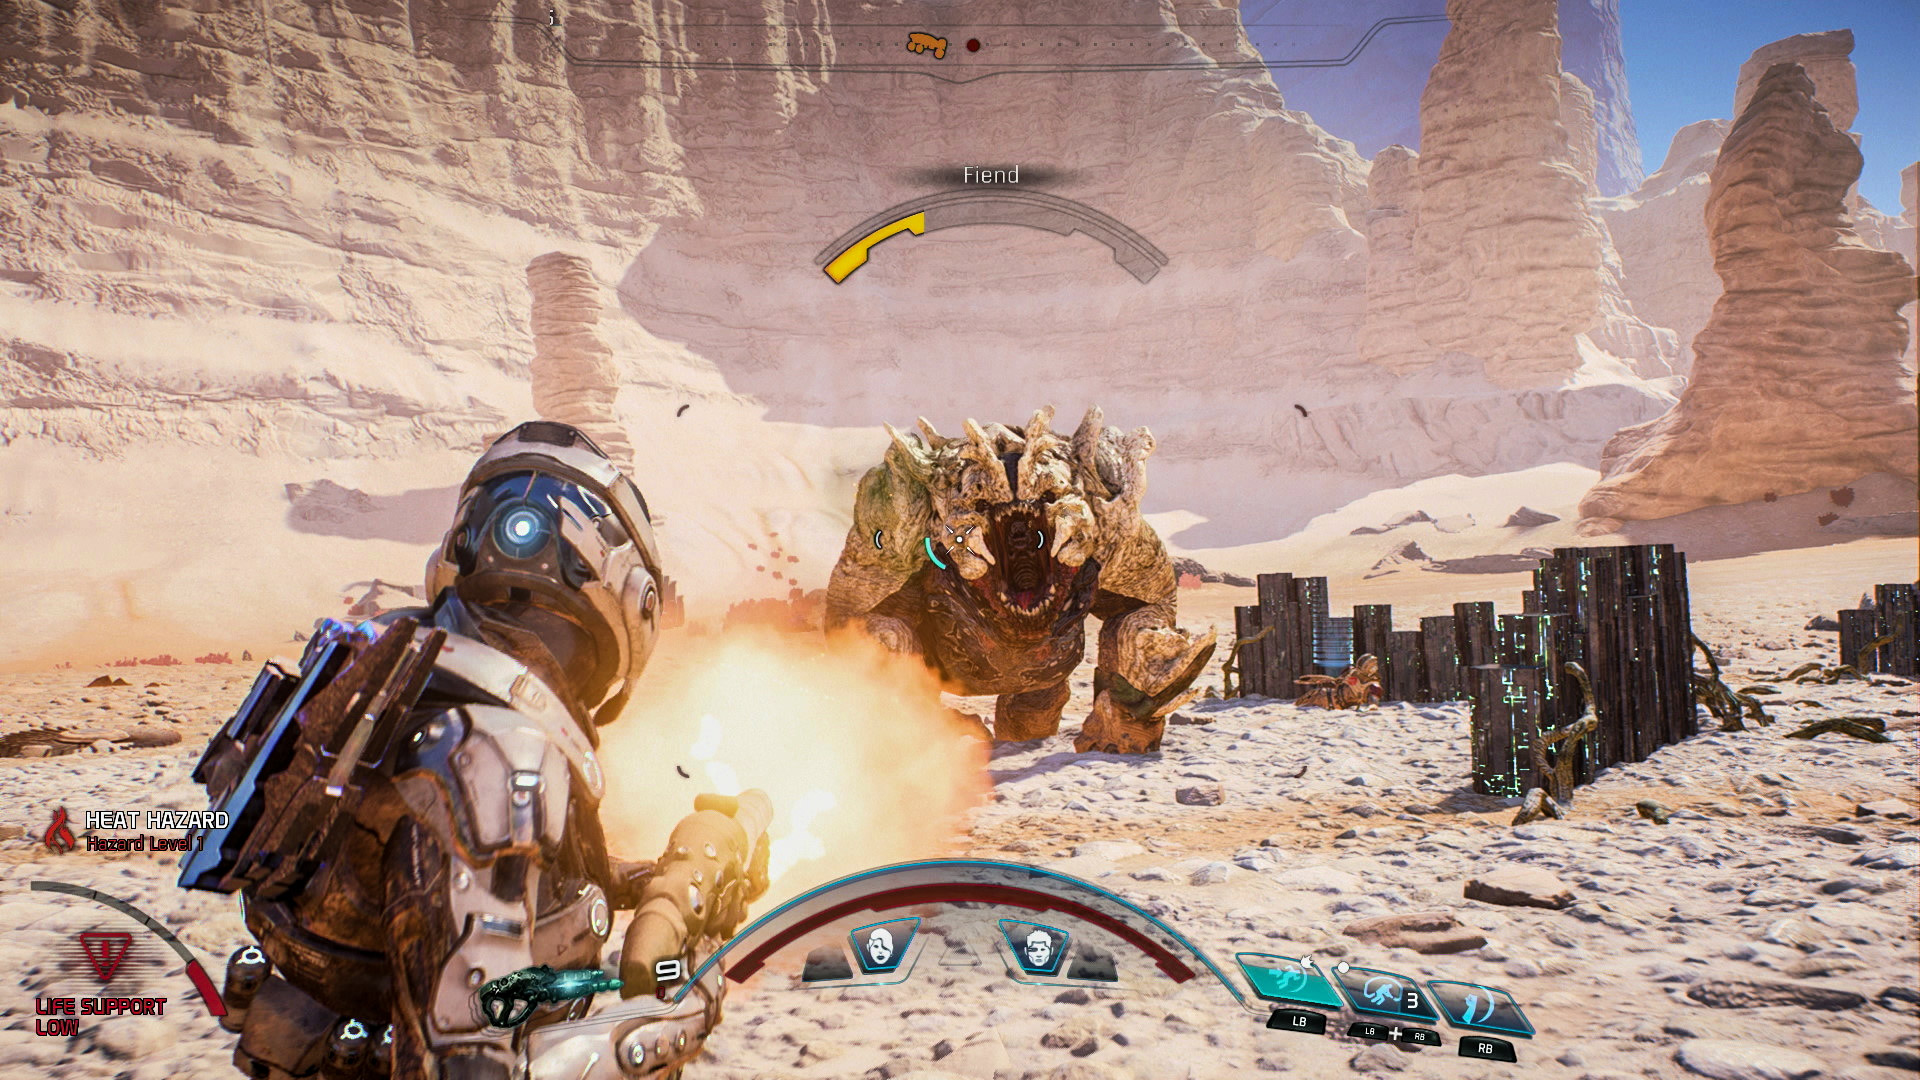 Mass Effect Andromeda Offers Plenty Of Gameplay Depth Despite Some Faults Techcrunch